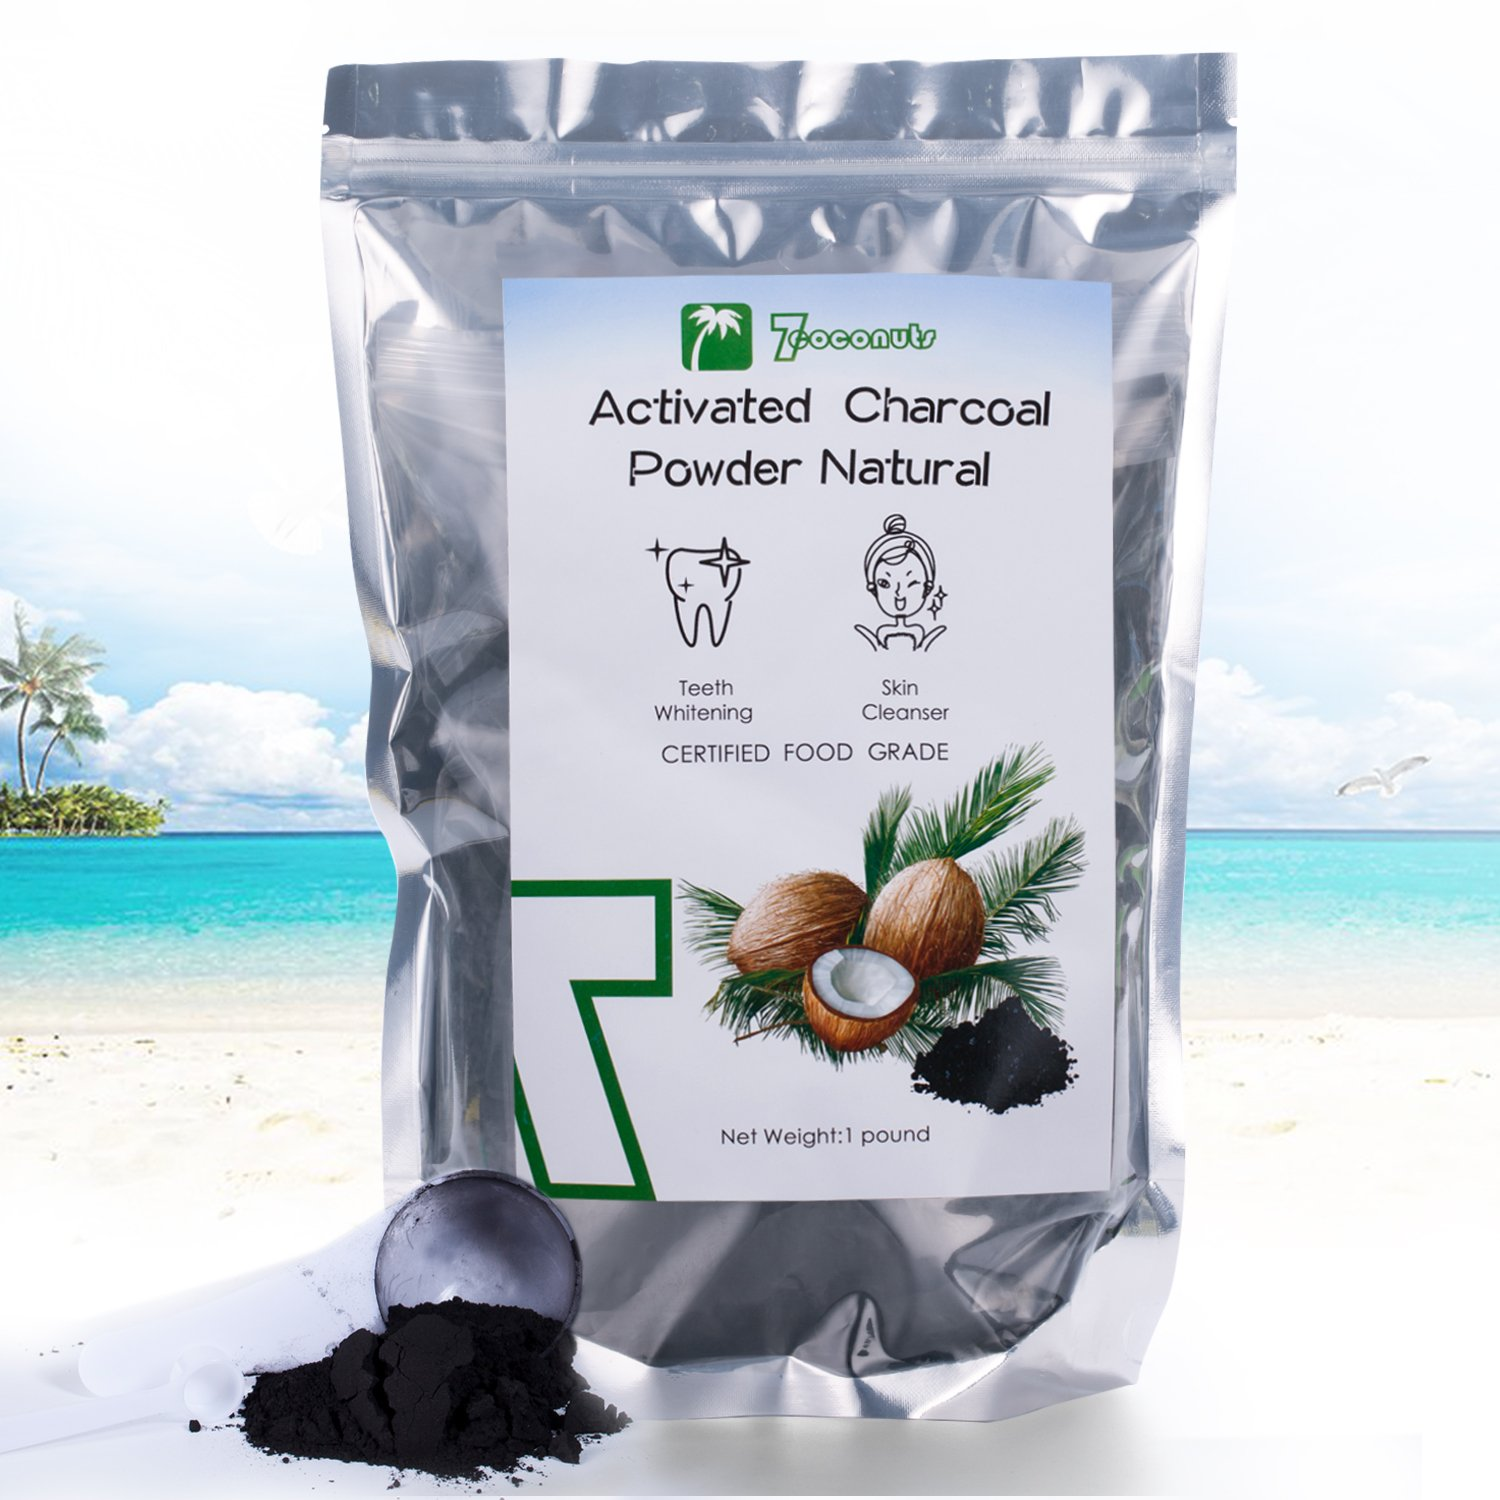 (1 pound) Activated Charcoal Powder 16OZ Natural Coconut Teeth Whitening Face Body Mask Food Grade